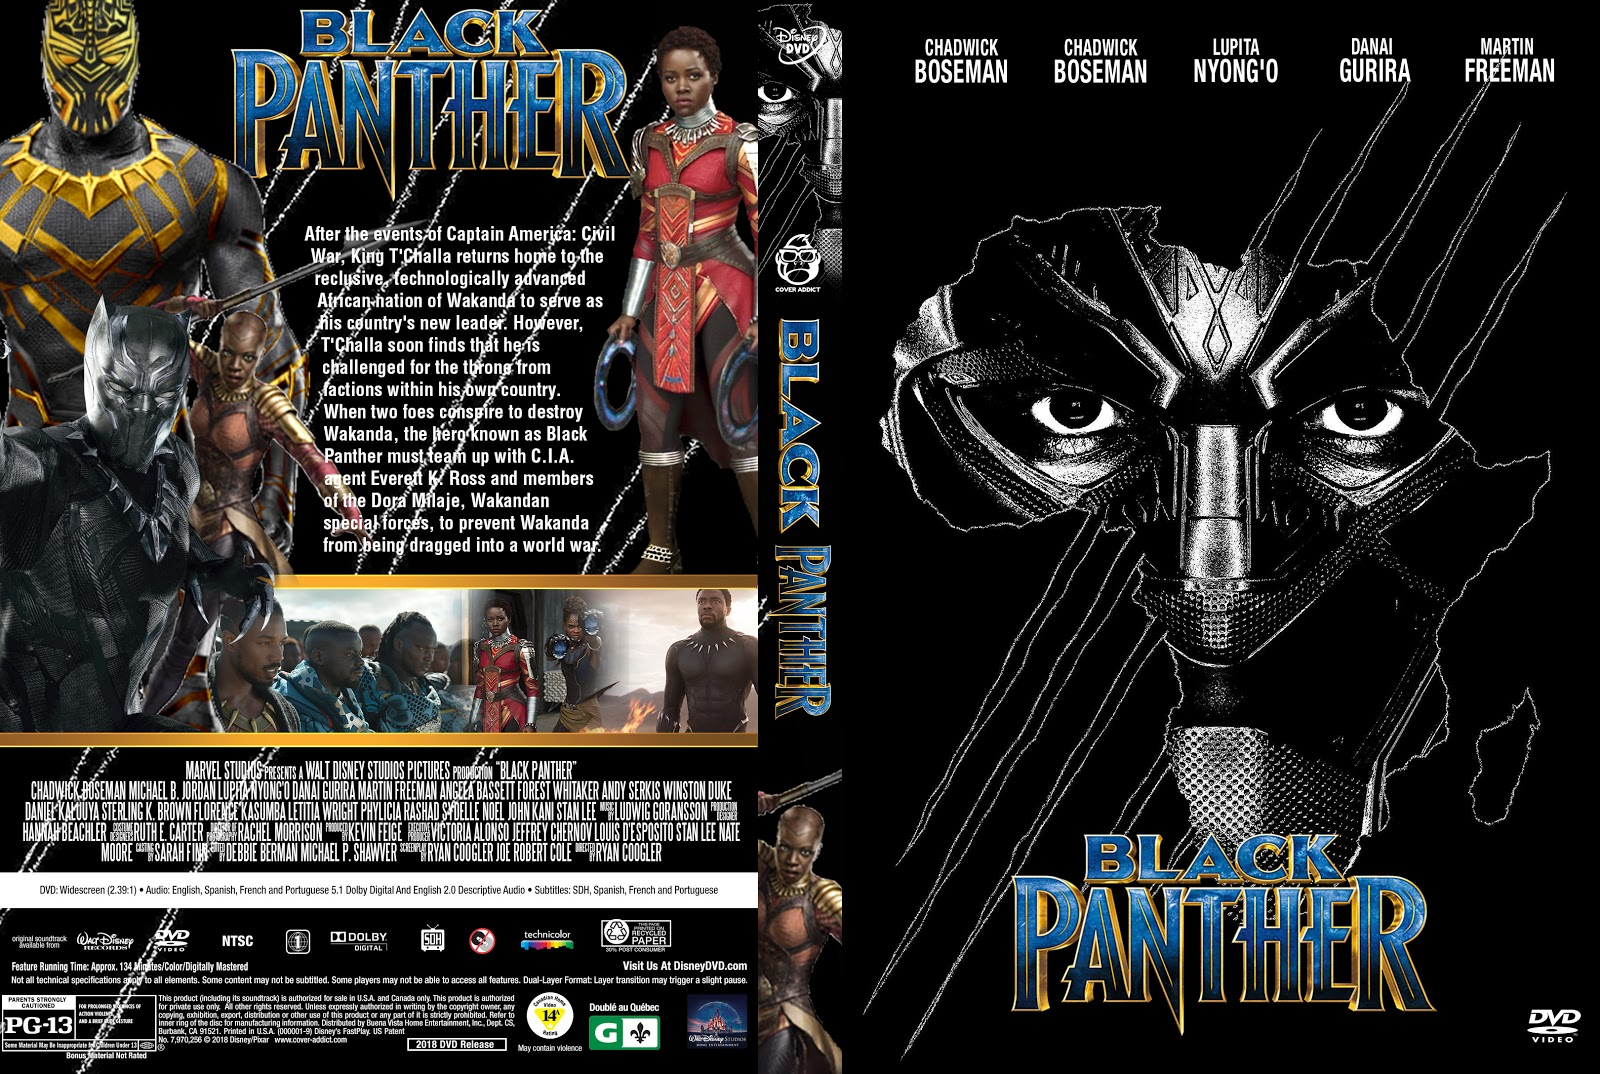 Black Panther Dvd Cover Cover Addict Free Dvd Bluray Covers And Movie Posters